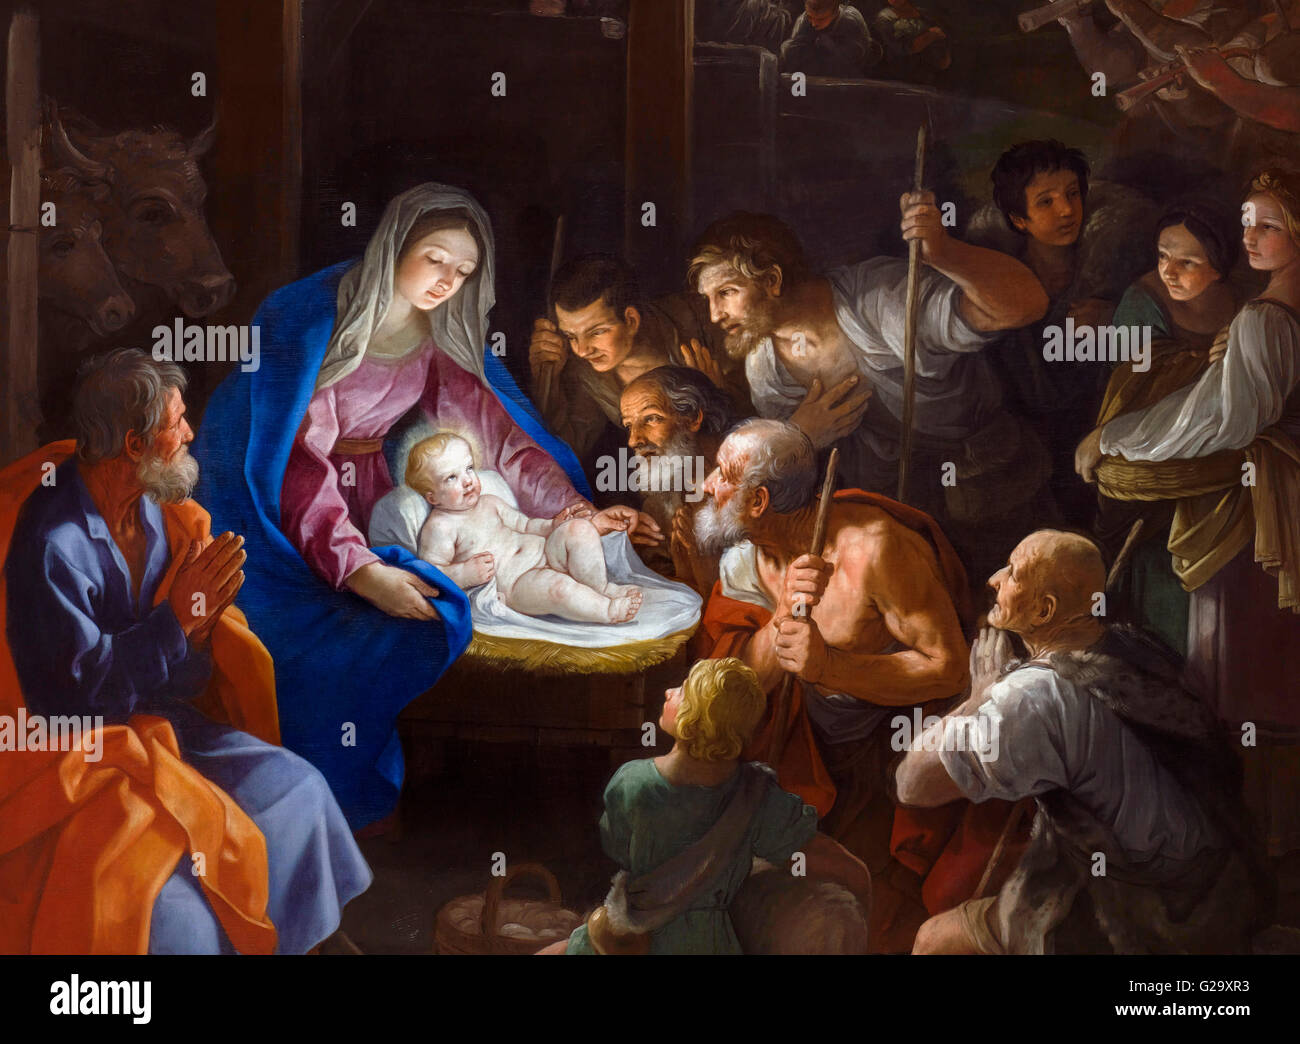 baby jesus painting stock photos baby jesus painting. Black Bedroom Furniture Sets. Home Design Ideas